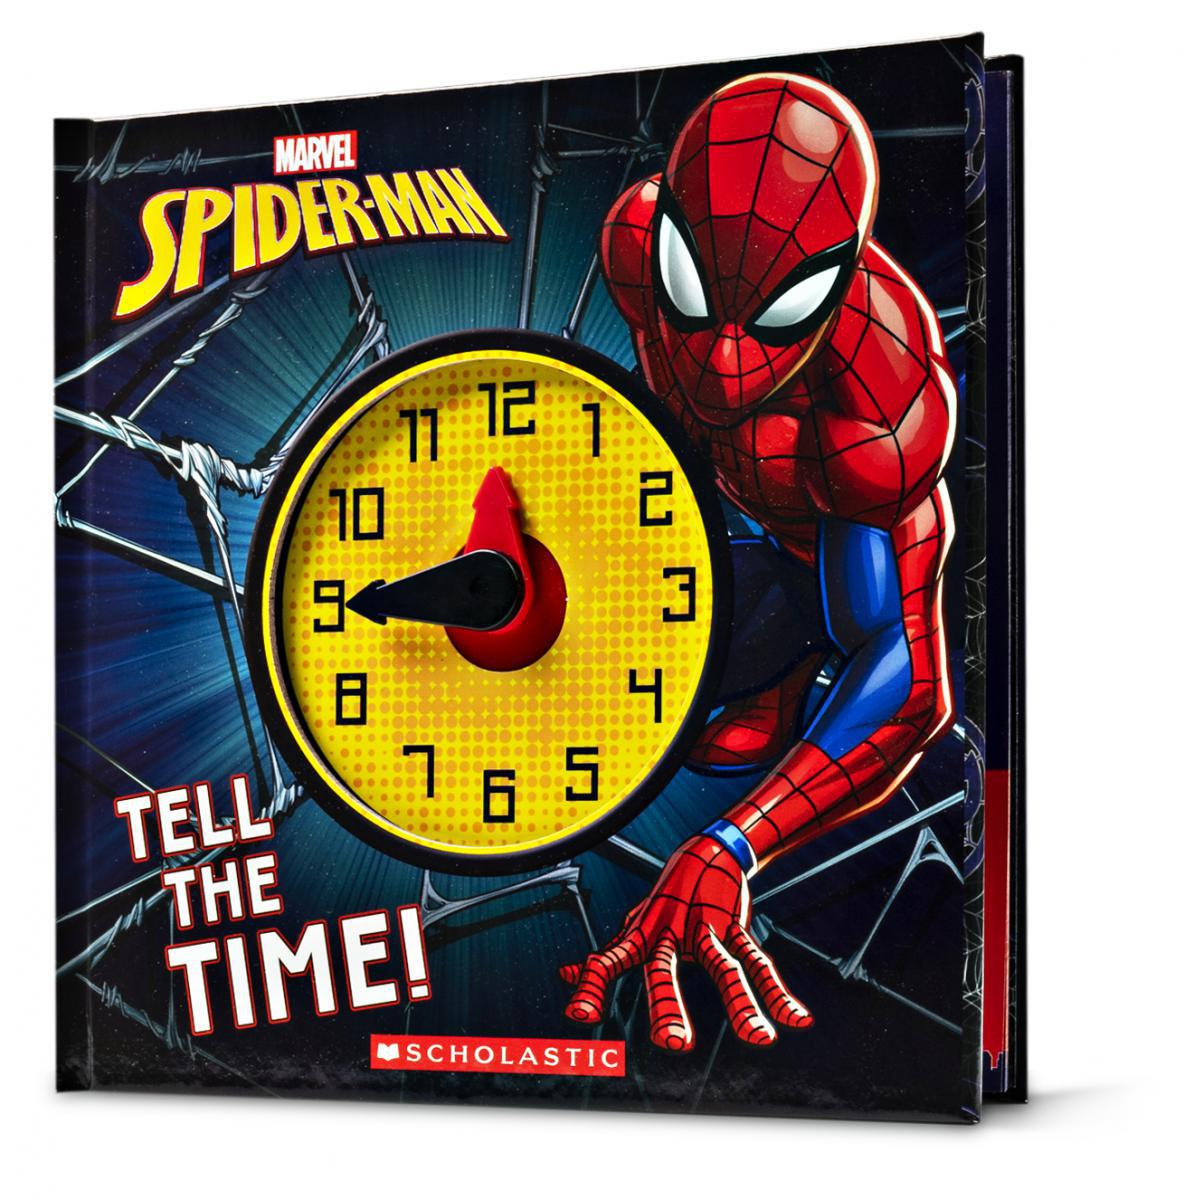 Marvel: Spider-Man: Tell the Time!